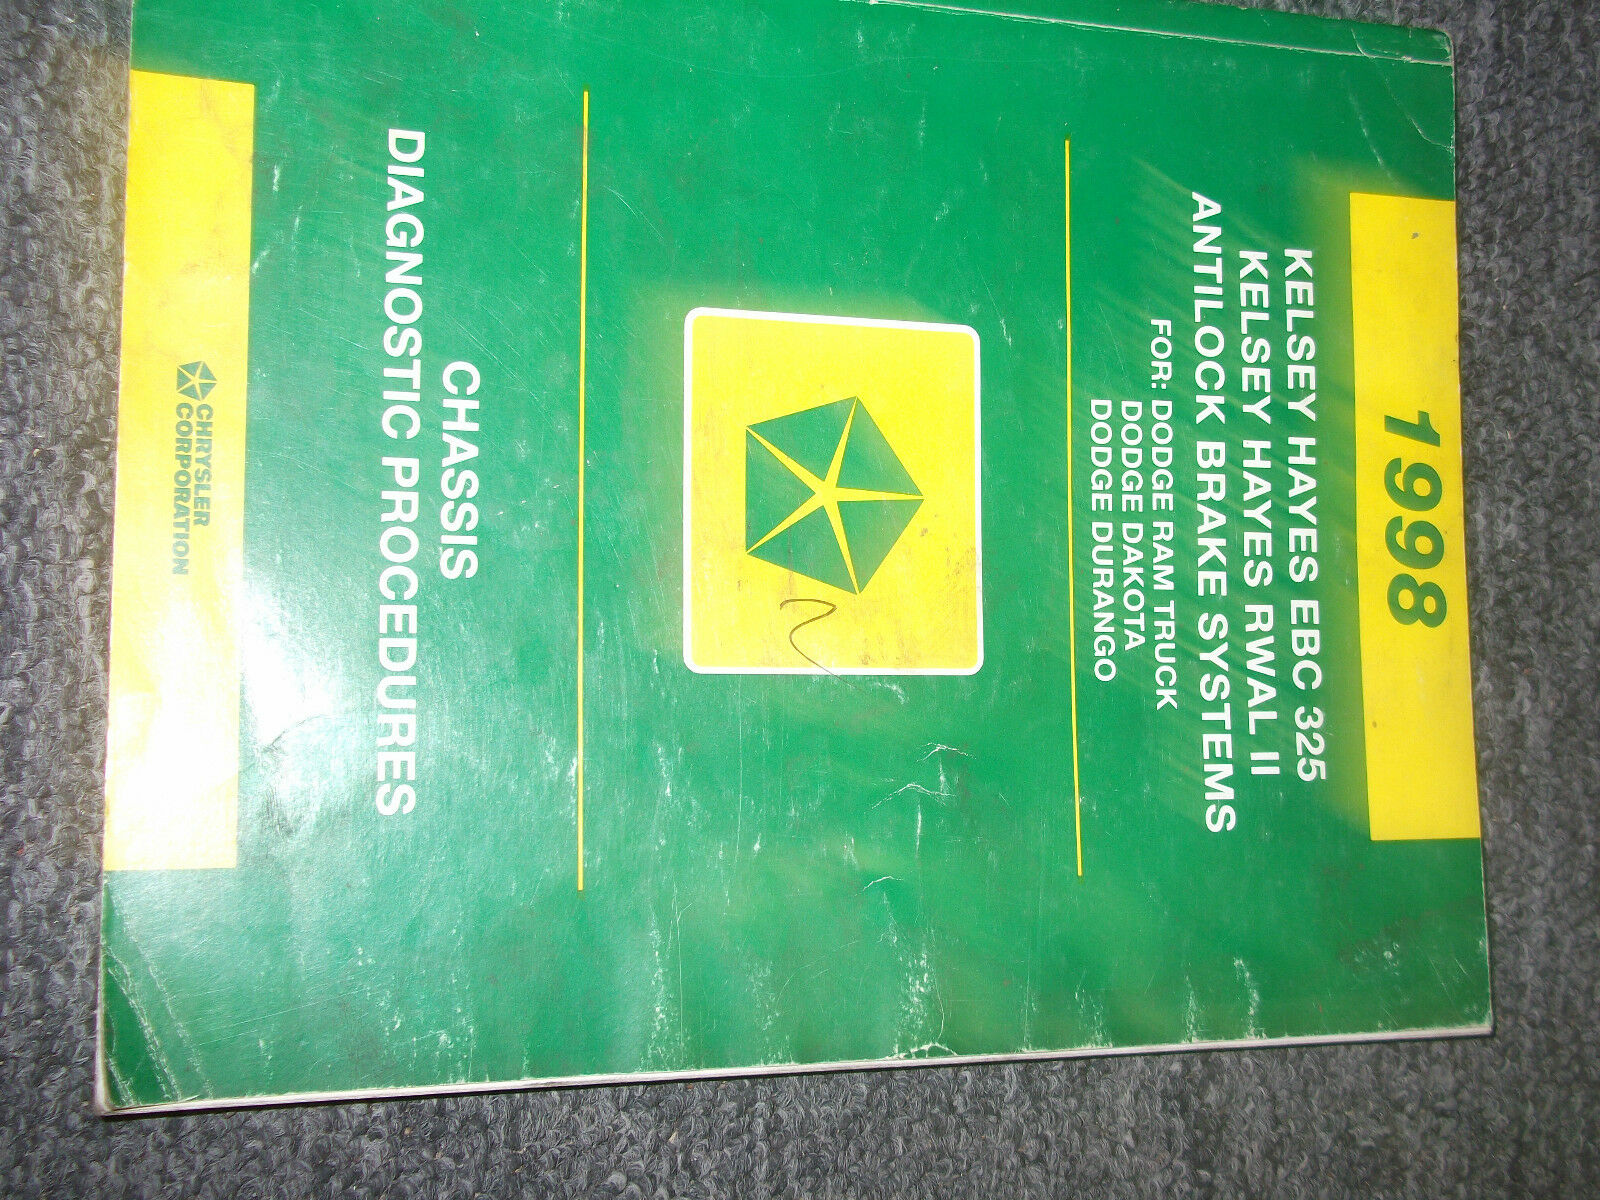 1998 Dodge DURANGO TRUCK CHASSIS DIAGNOSTIC Service Shop Repair Manual 98  OEM 1 of 2Only 3 available ...